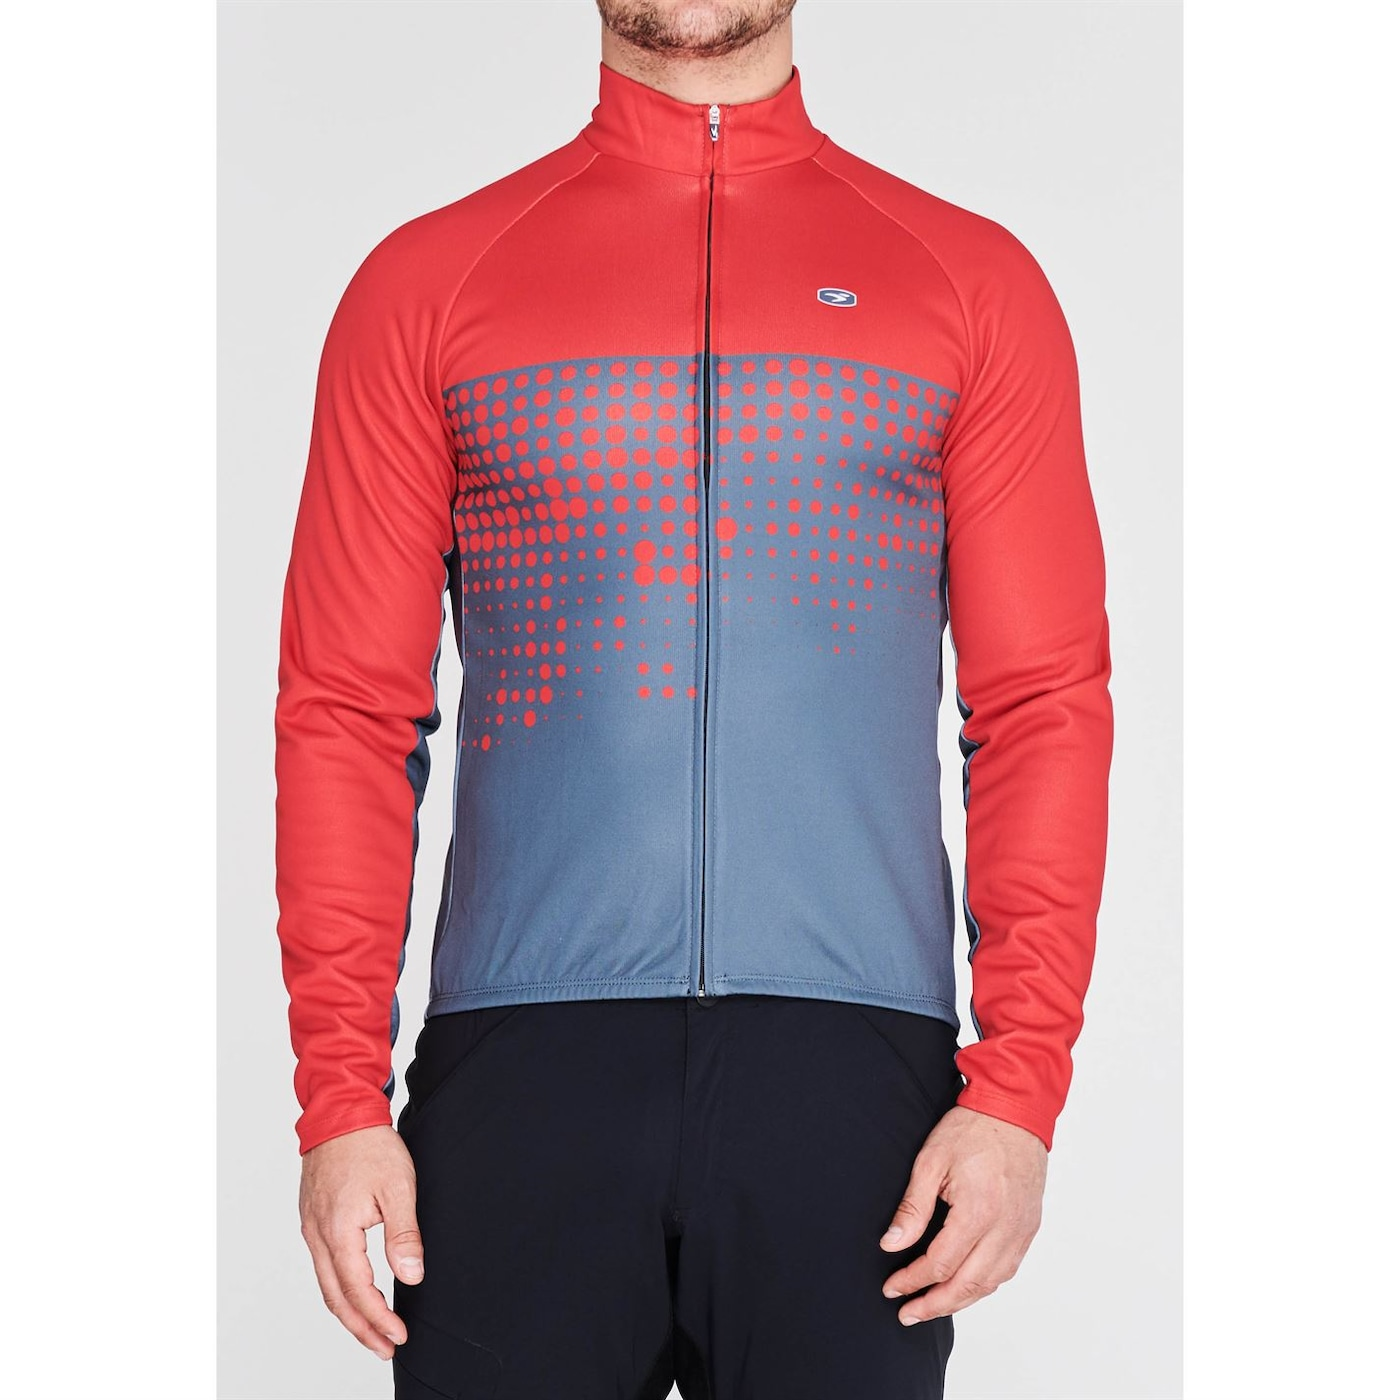 Sugoi Evolution Zap Long Sleeve Jersey Mens